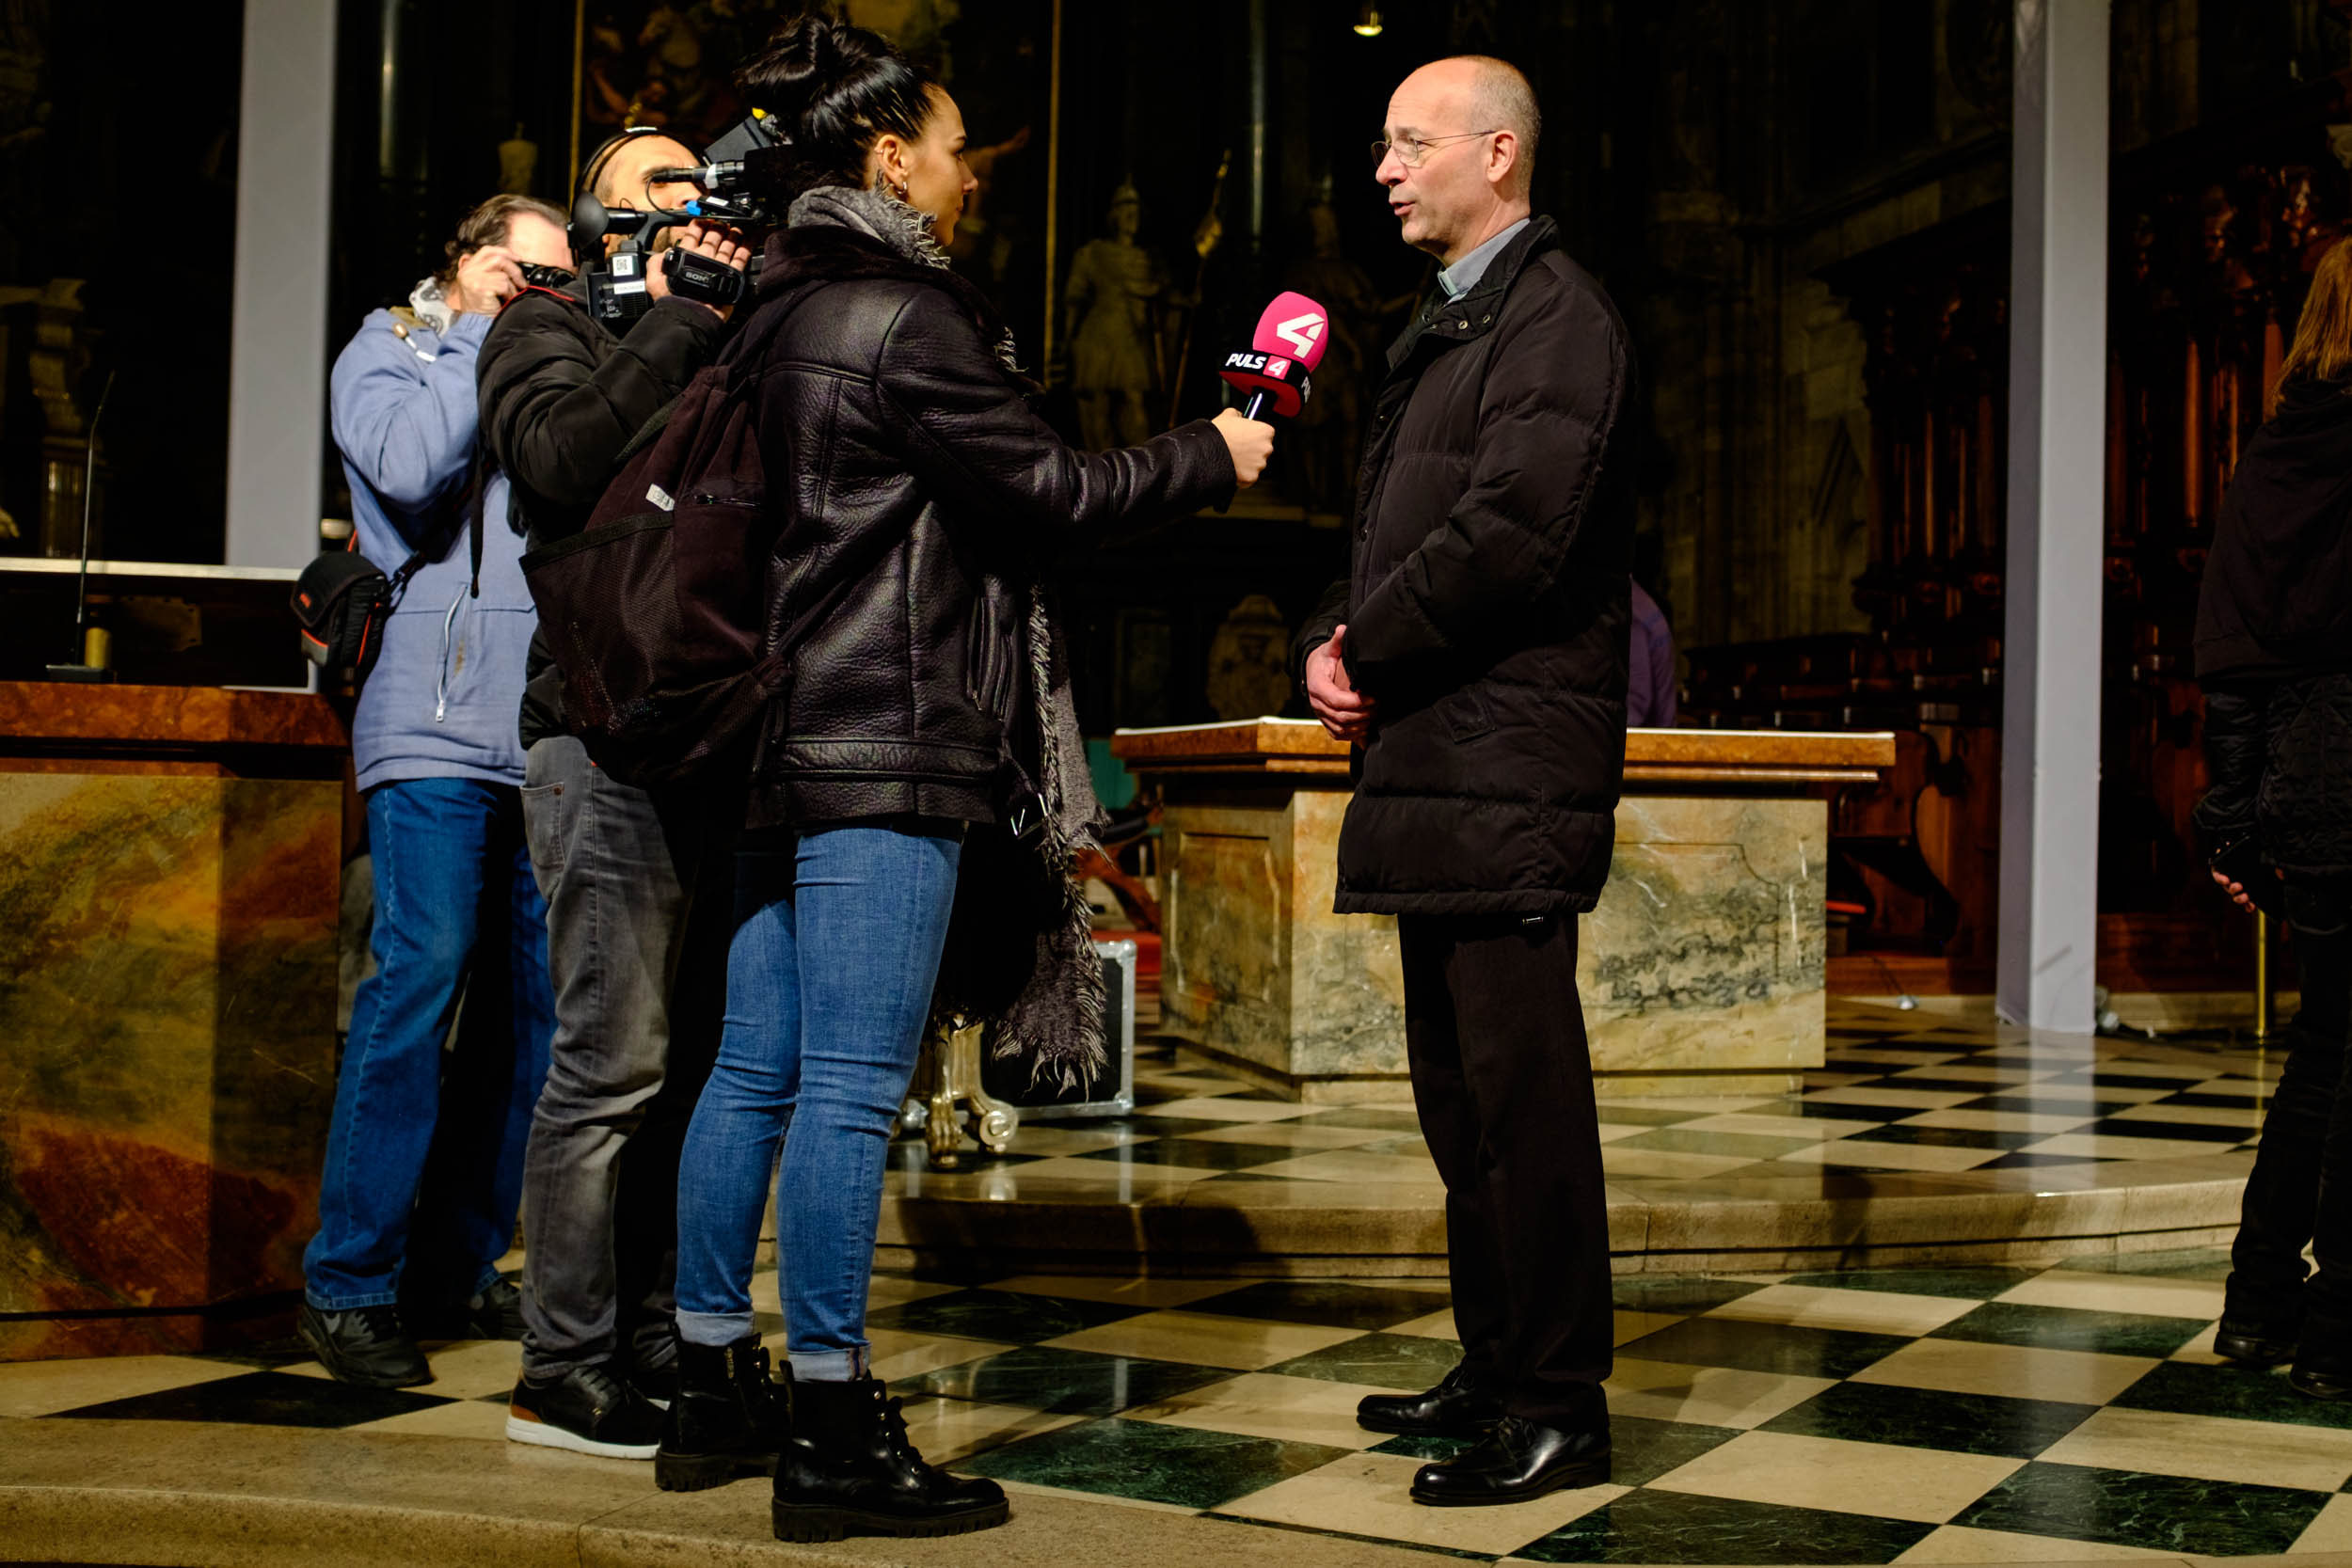 Toni Faber, priest of Stephansdom, being interviewed about the event, which he'd aimed to be a mixture of Falco and Mozart.